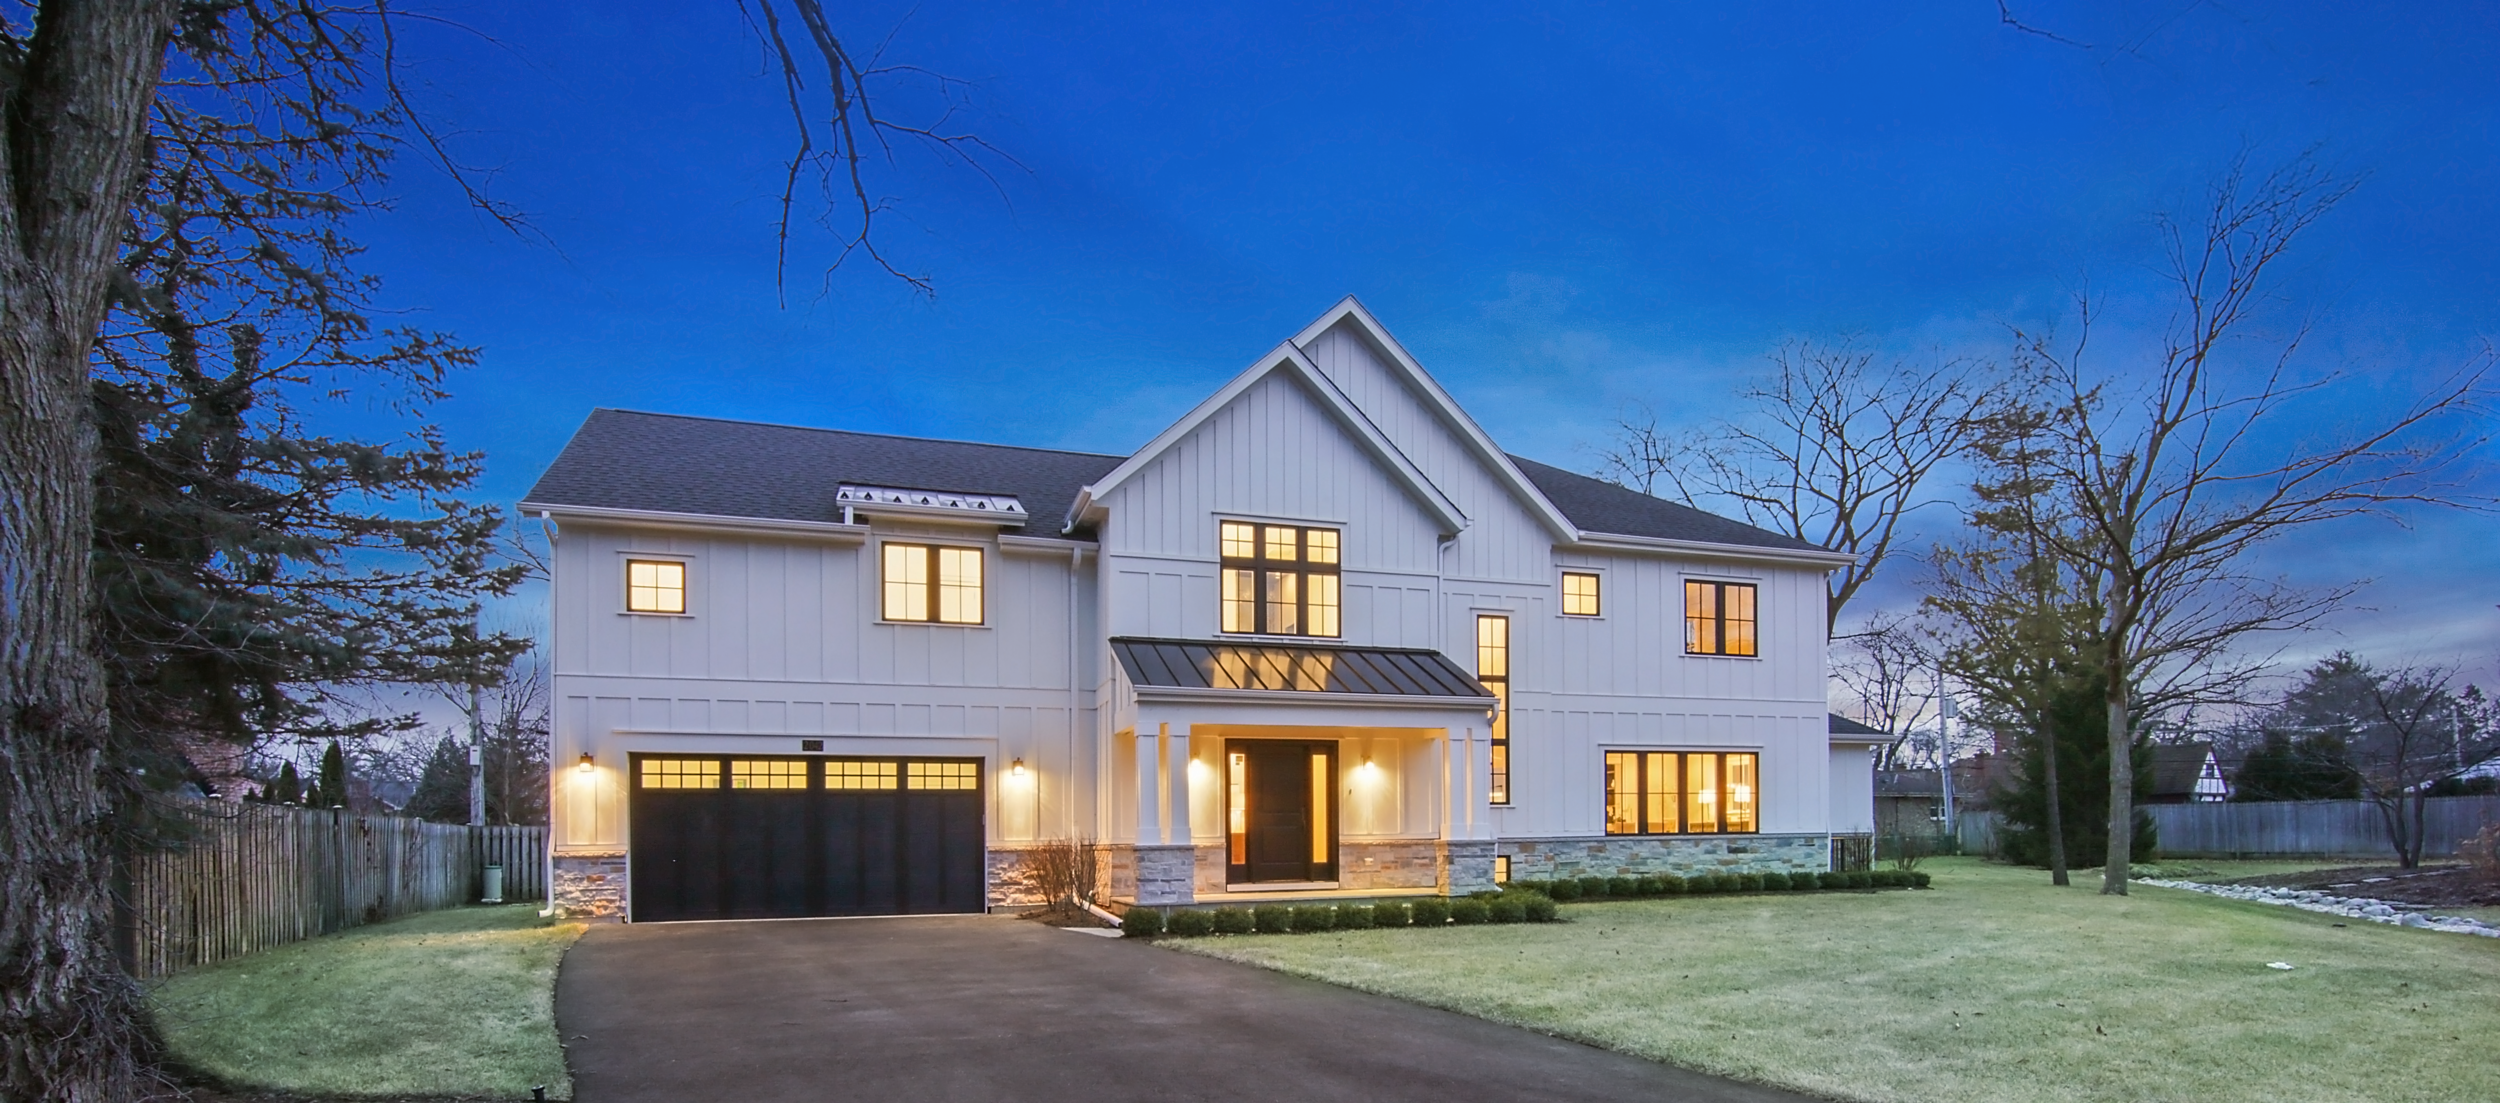 Balmoral Luxury Home | Glenview